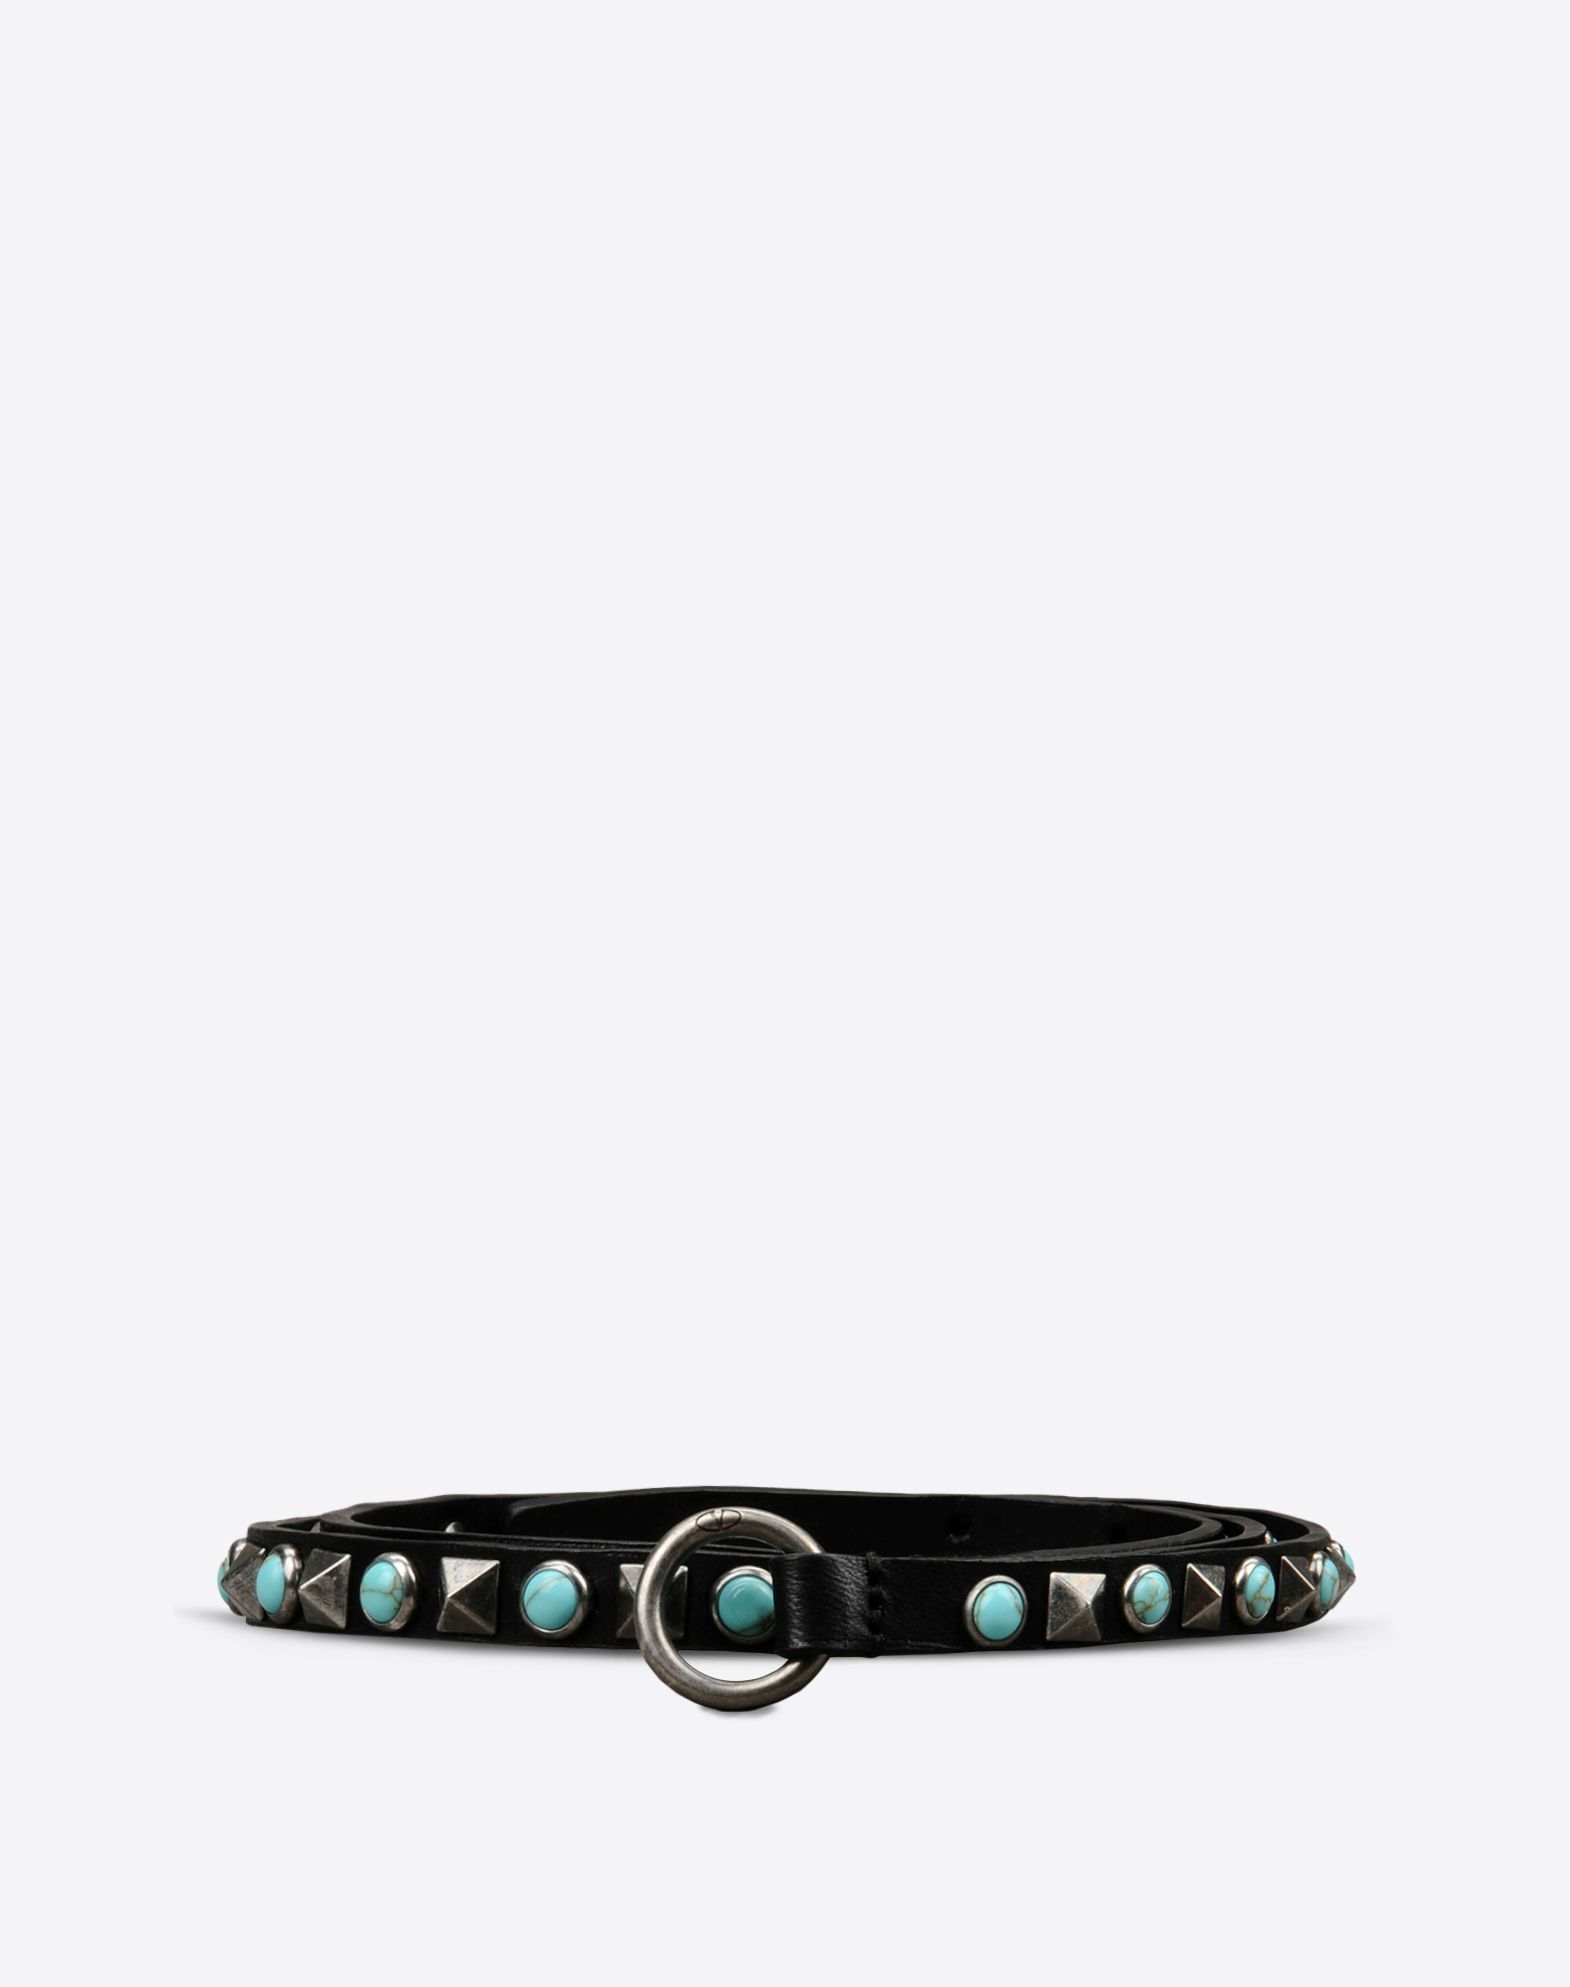 VALENTINO Valentino Garavani Rockstud Rolling leather belt  - Antique silver-finish brass studs  - Turquoise paste stones  - Adjustable pin closure  - Dimensions:H10mm  - Made in Italy 46426598nm